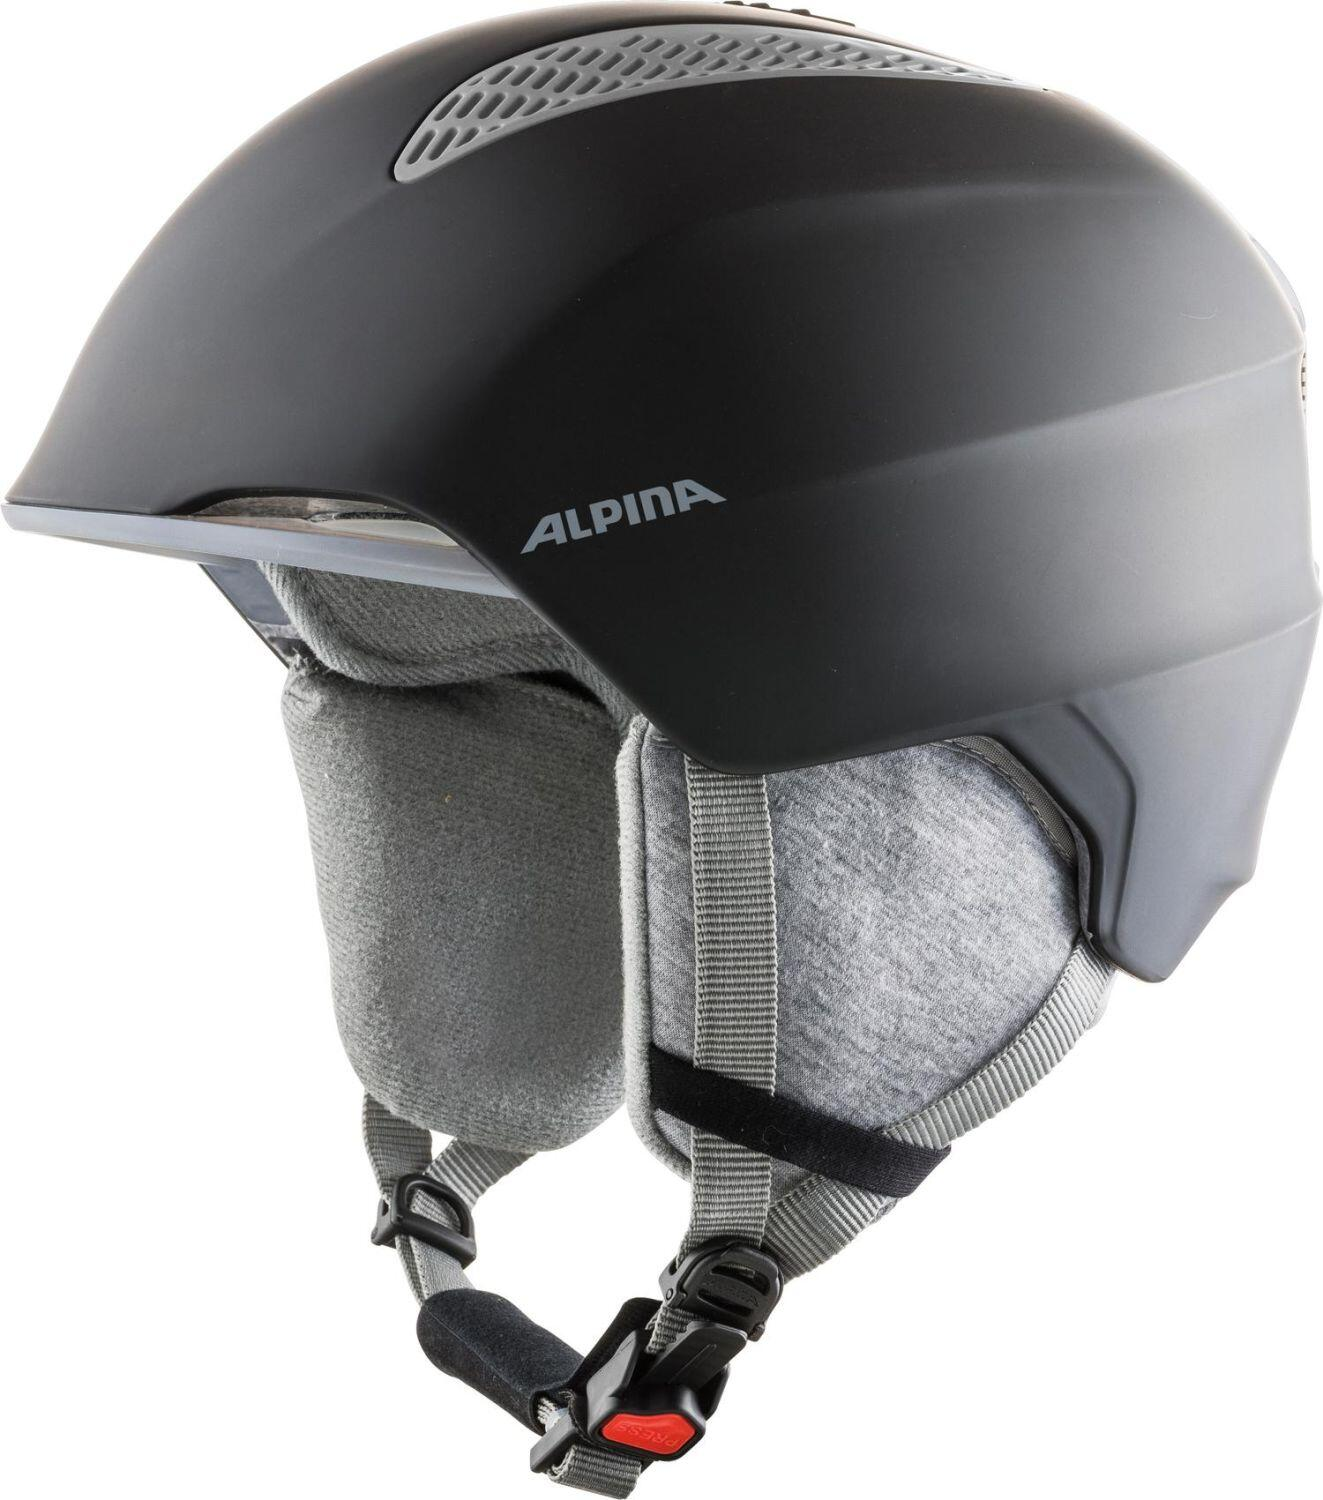 Fürski - Alpina Grand Kinder Skihelm (Größe 54 57 cm, 30 black) - Onlineshop